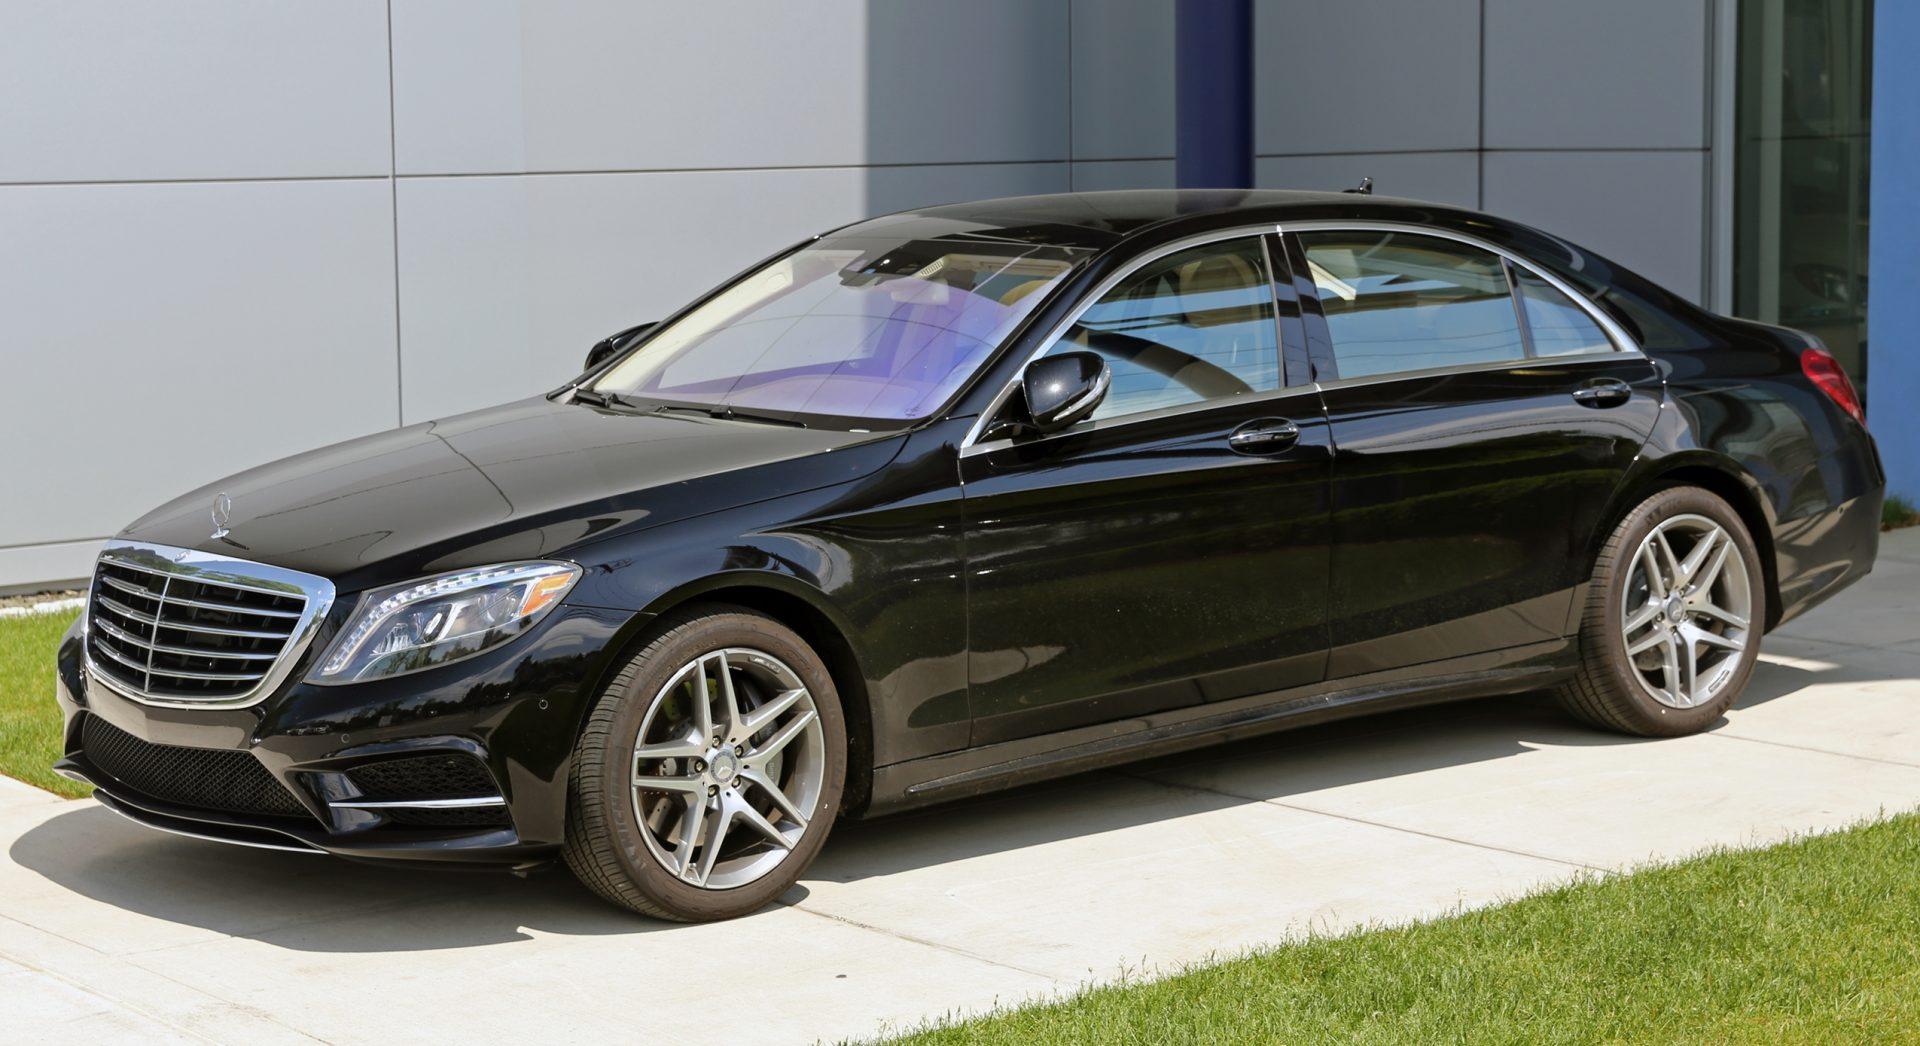 S550 mercedes pics and prices autos post for The price of mercedes benz